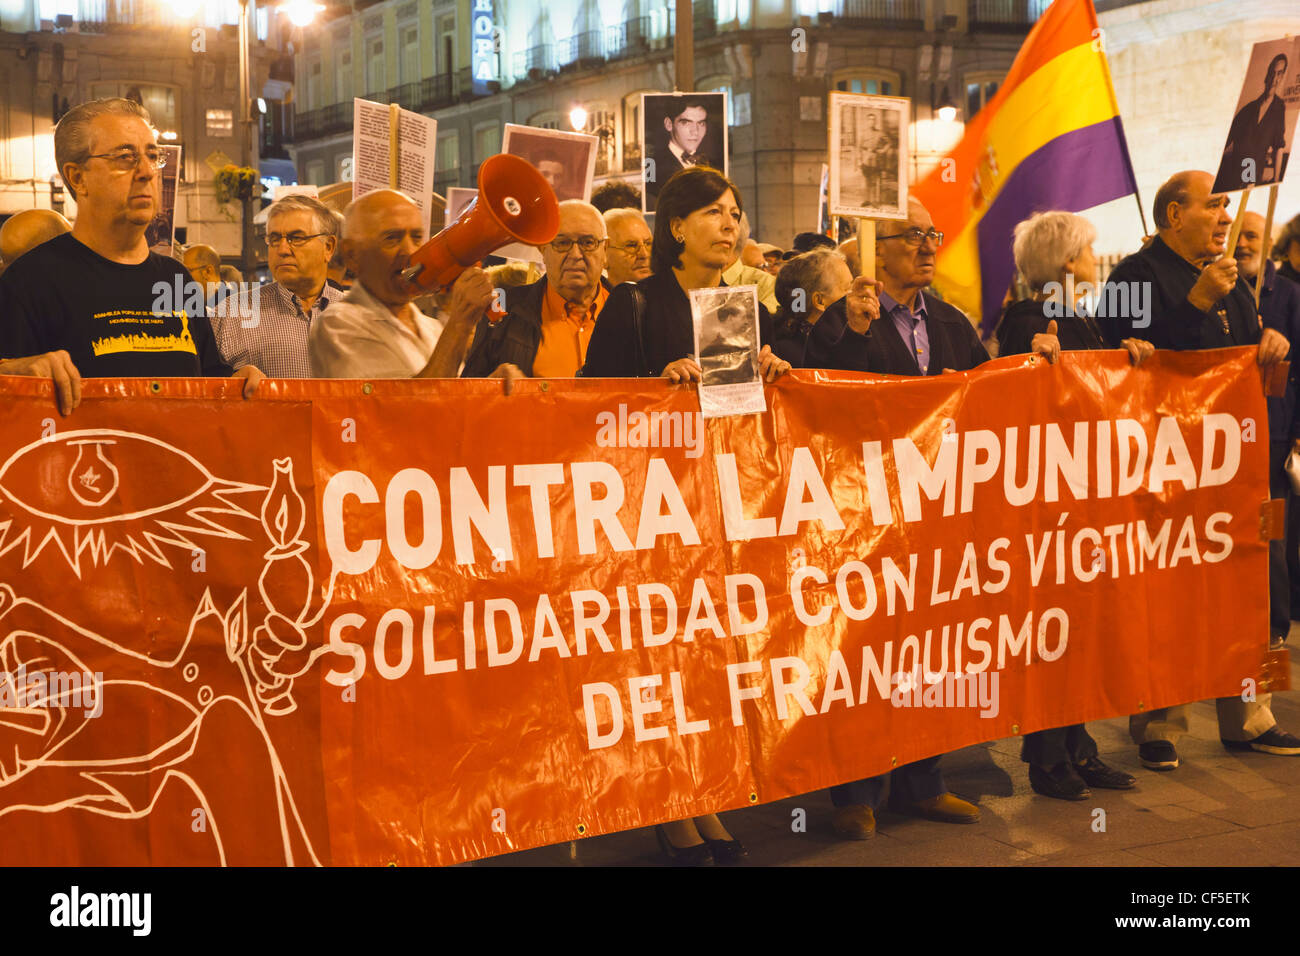 Demonstration Plaza del Sol Madrid. Solidarity with victims of Francoism. - Stock Image